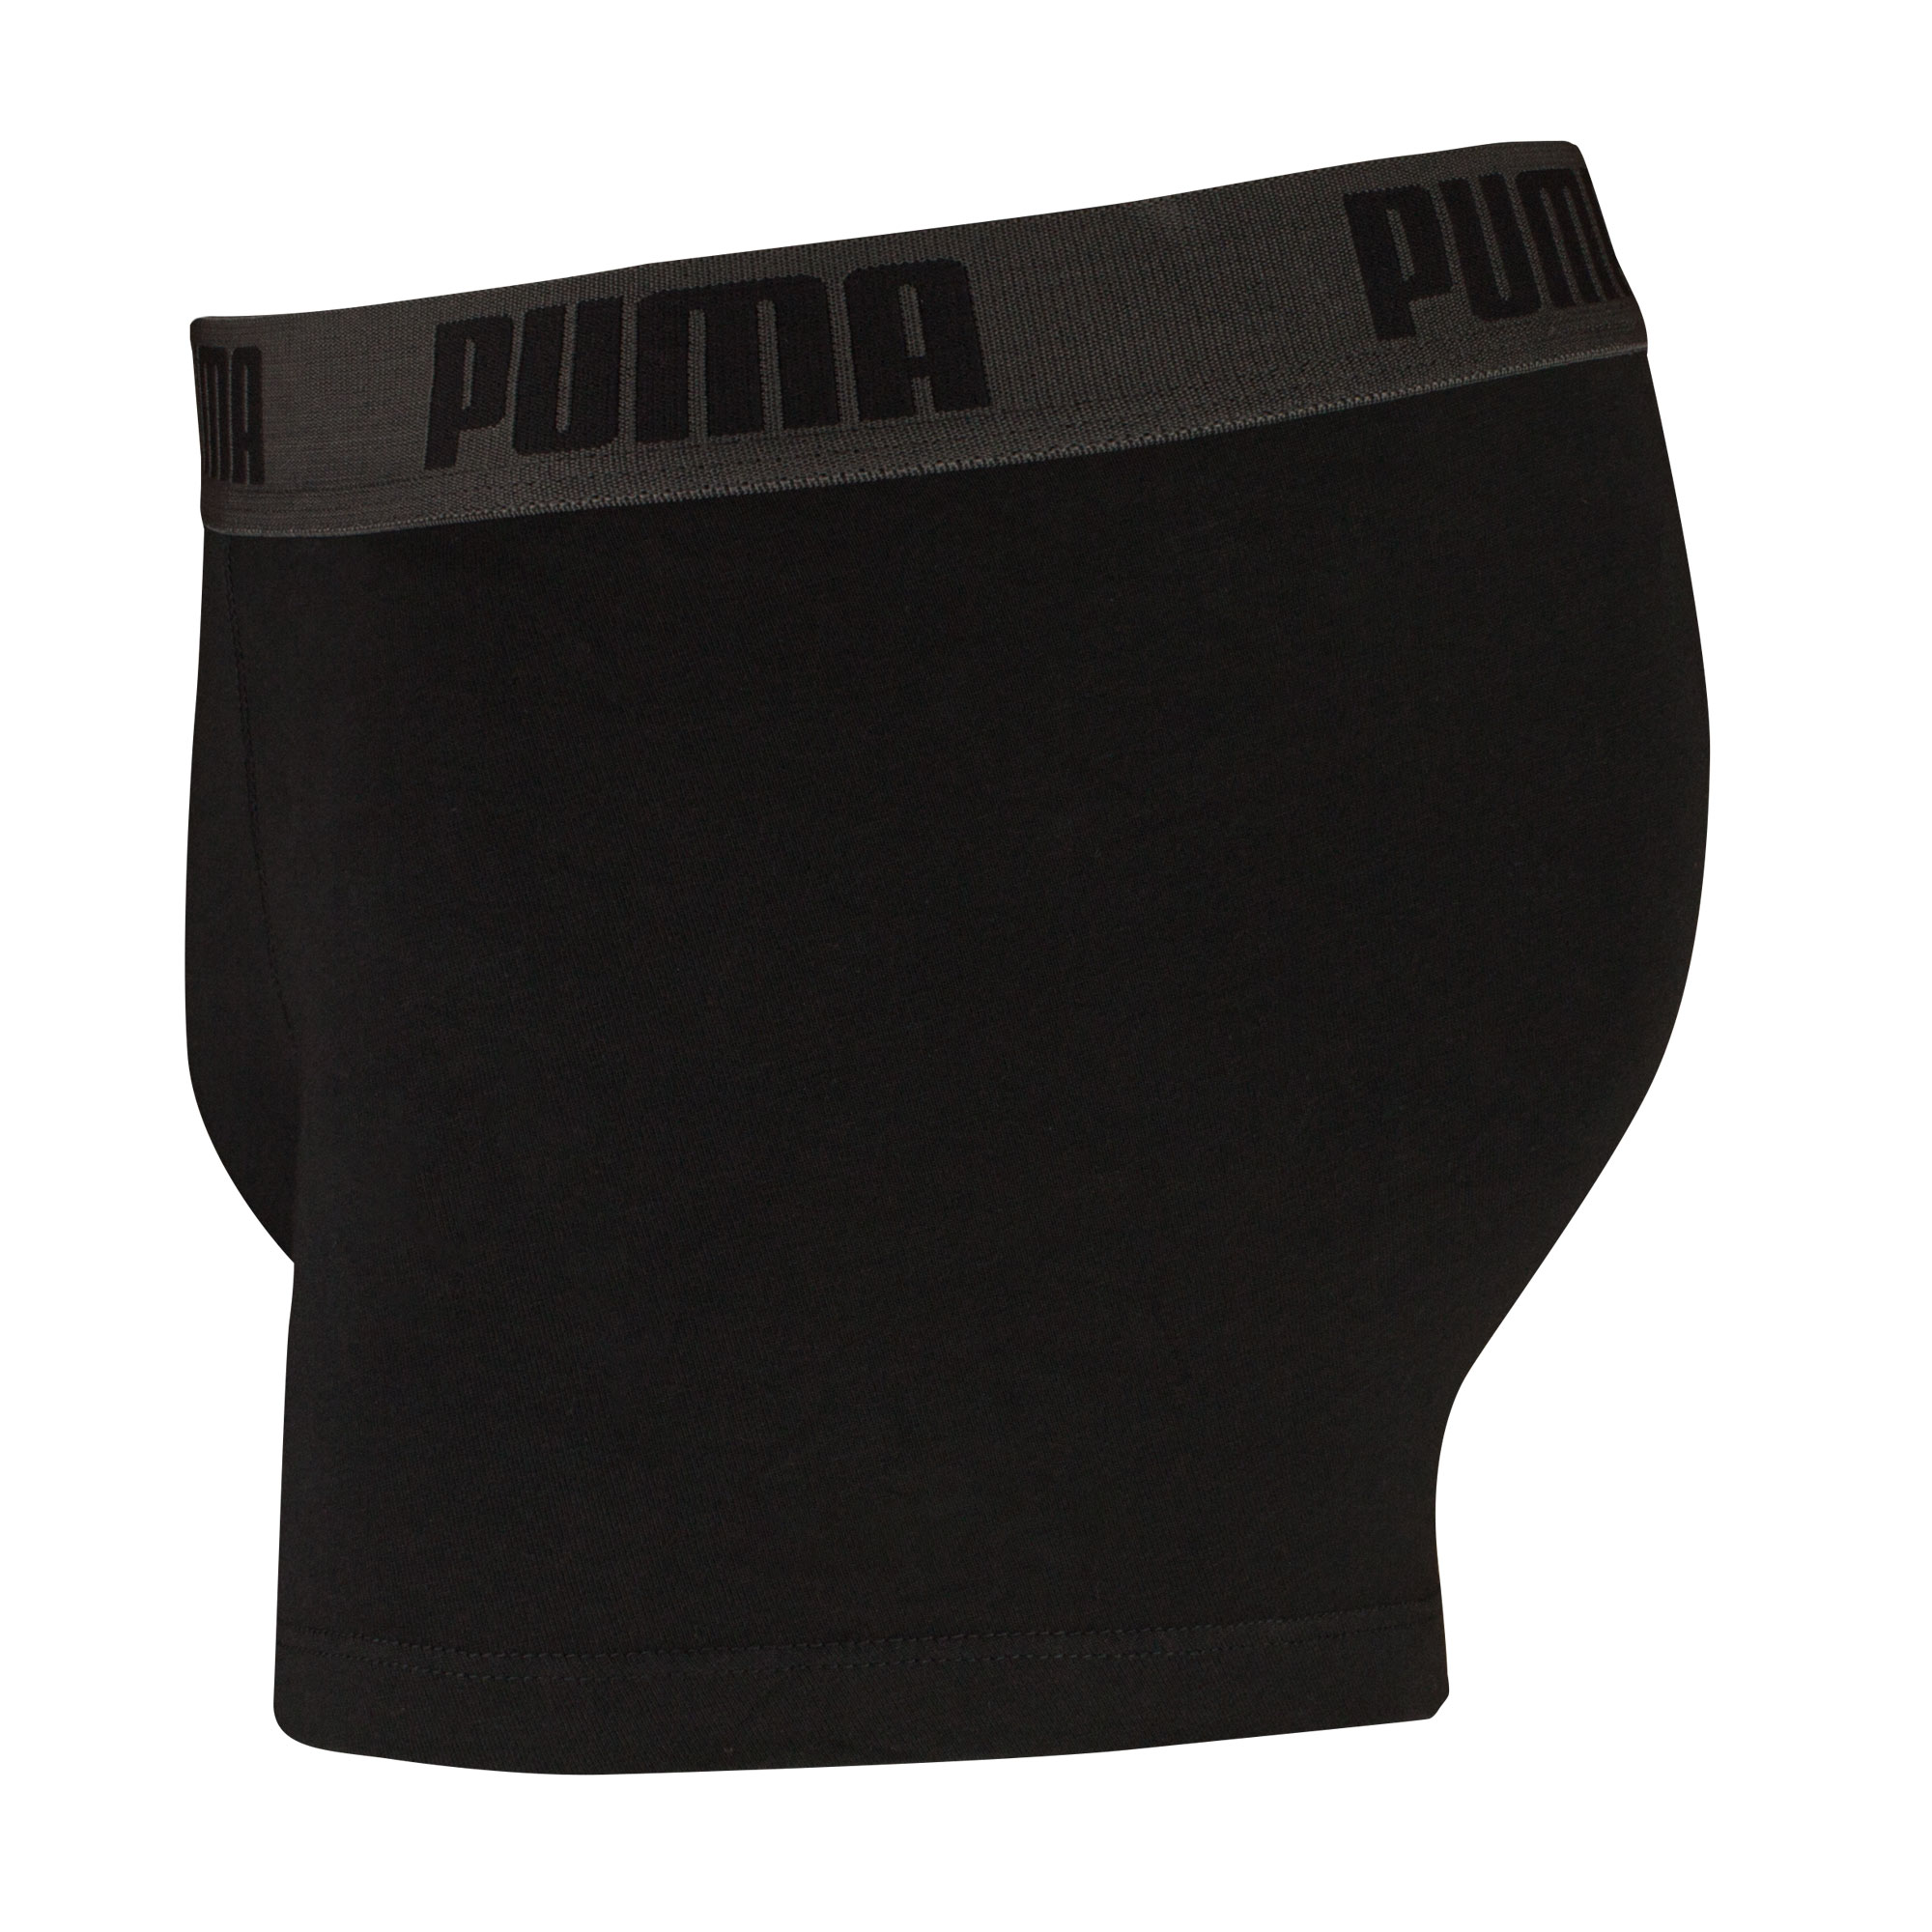 PUMA Herren Boxershorts, 4er Pack Trunks, Basic – Bild 4